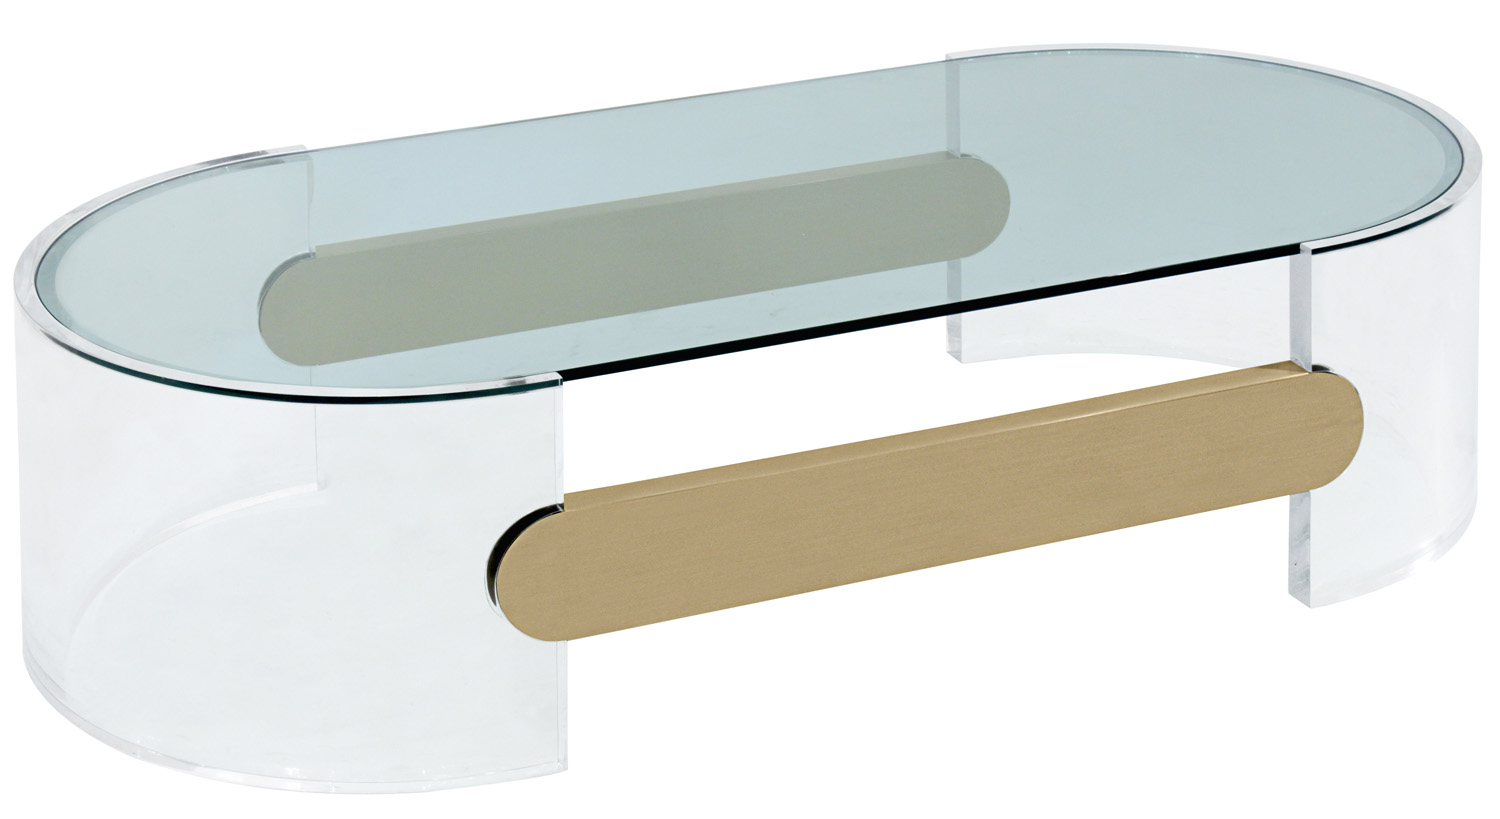 70s 55 lucite+brass oval strtchrs coffeetable374 hires.jpg